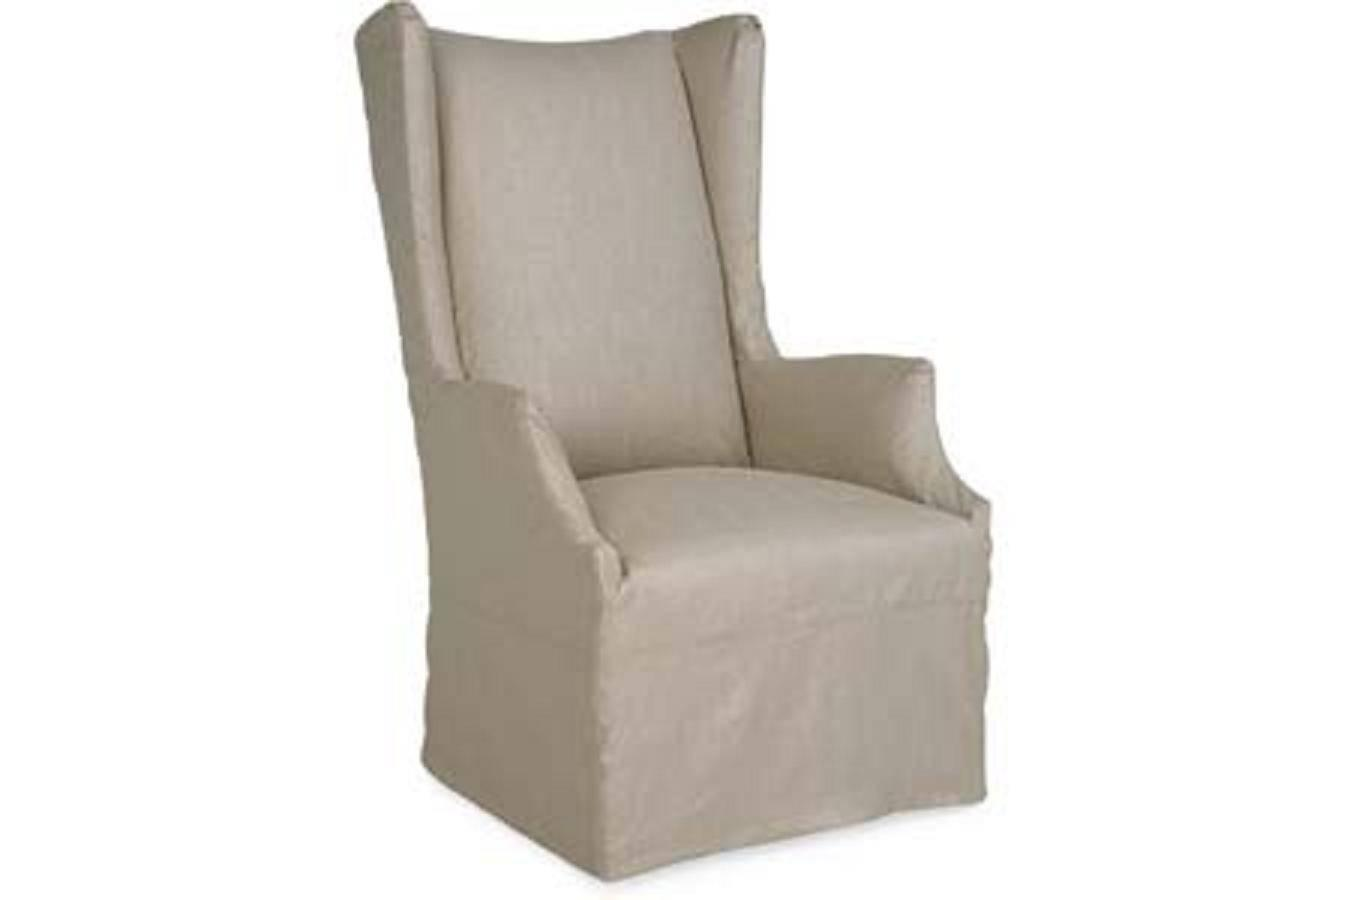 high back chair covers for sale baby bath tub arm at 1stdibs